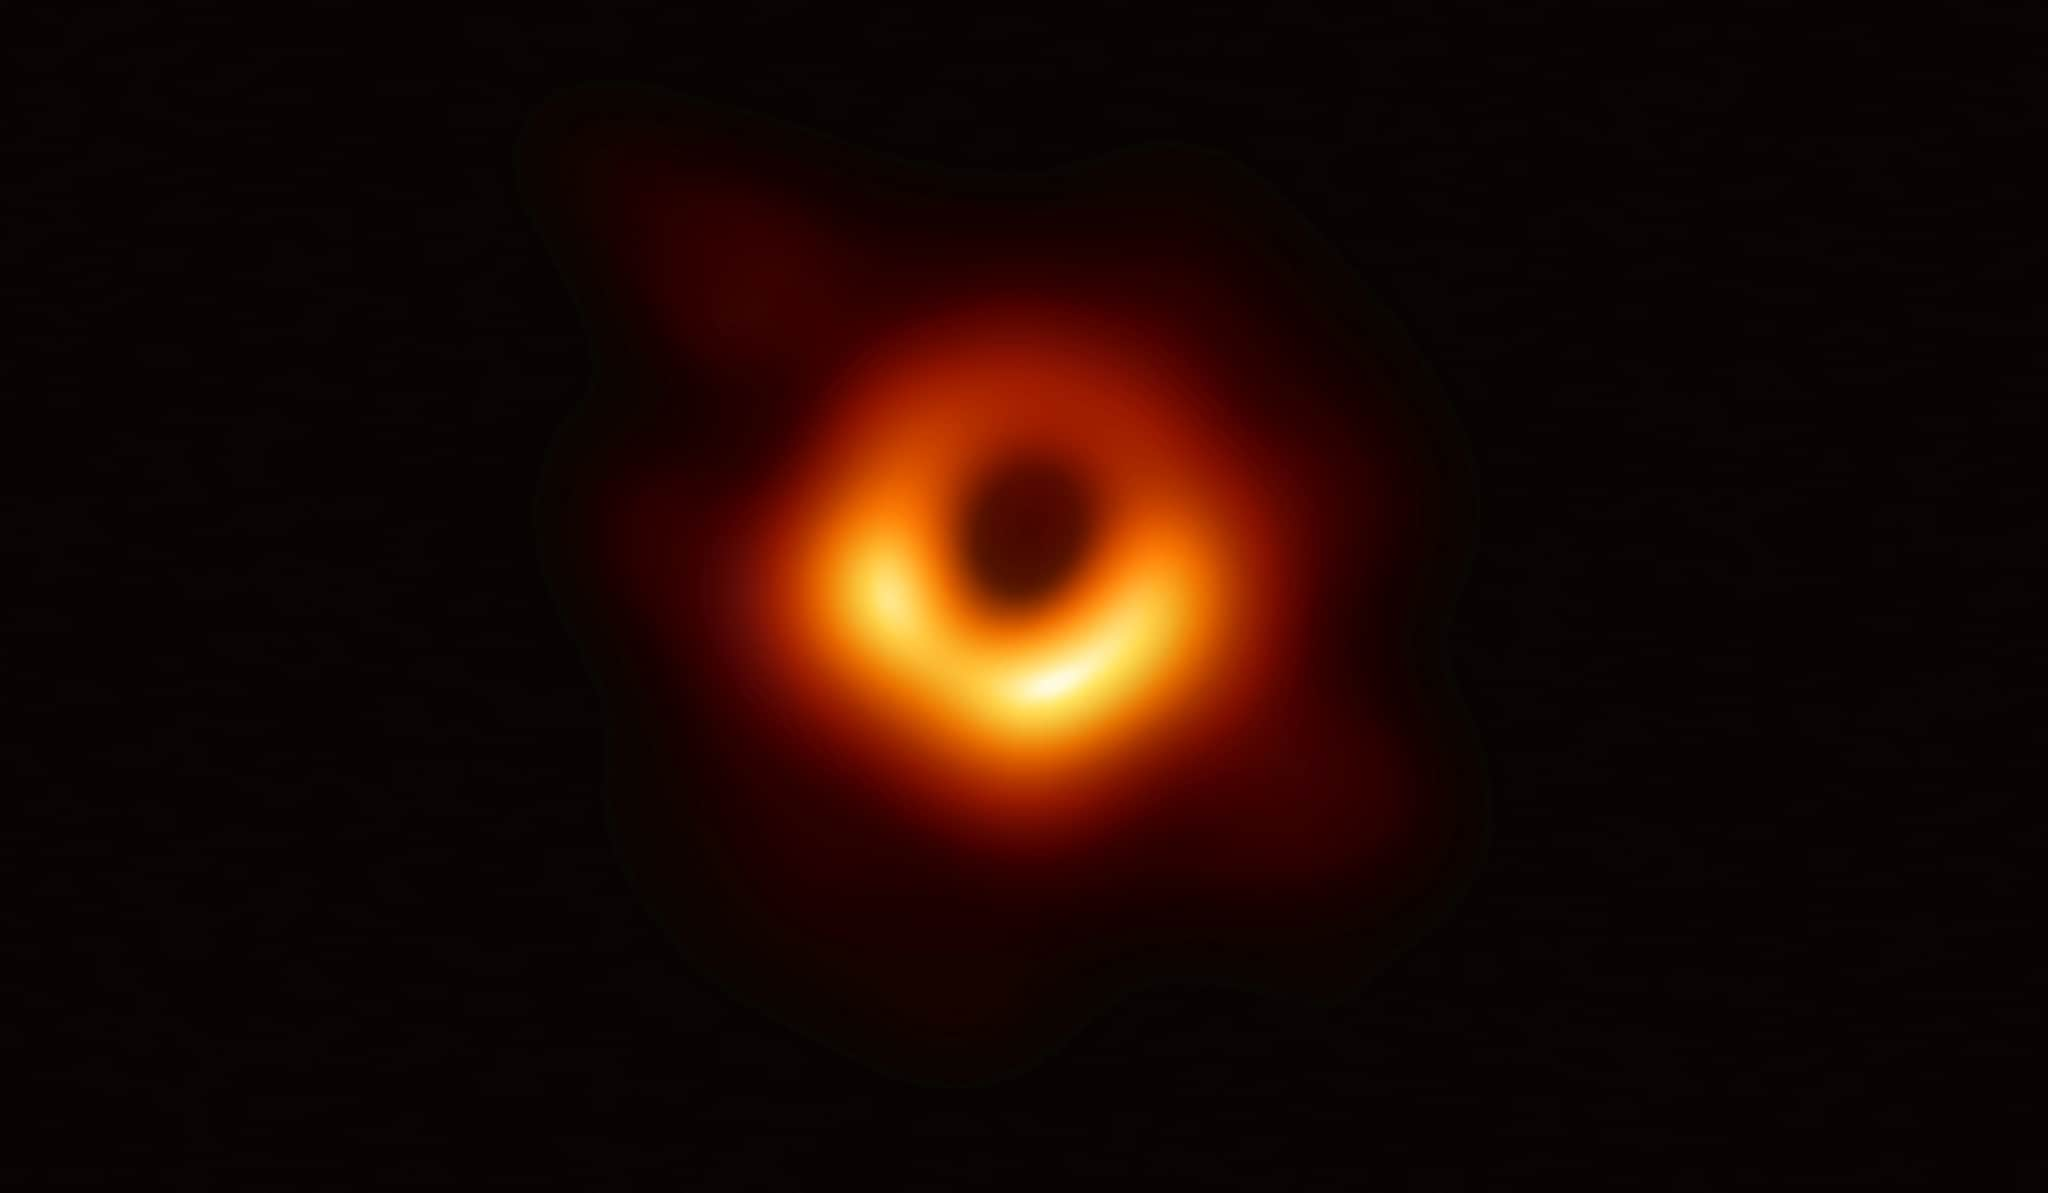 The first ever photo a black hole, taken using a global network of telescopes, conducted by the Event Horizon Telescope (EHT) project, to gain insight into celestial objects with gravitational fields so strong no matter or light can escape, is shown in this handout photo released April 10, 2019. Event Horizon Telescope (EHT)/National Science Foundation/Handout via REUTERS